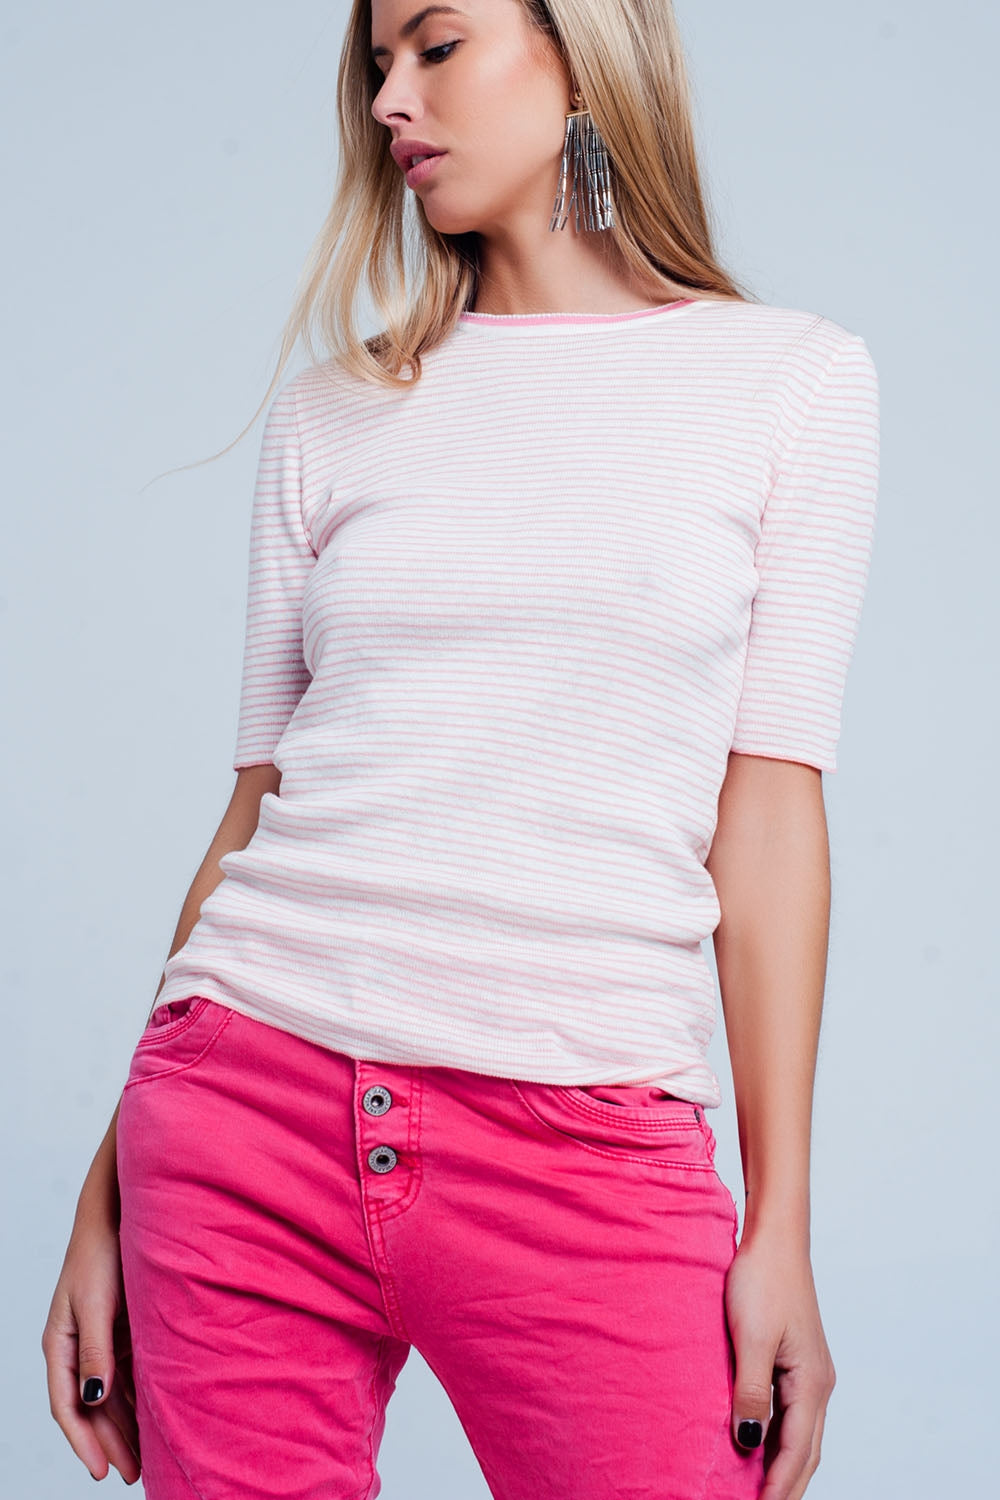 Pink Cropped Sleeve Sweater In Breton Stripe-Women - Apparel - Sweaters - Pull Over-Product Details Stretchy pullover made of comfortable linen and cotton. This pullover has pink and white stripes and is finished off by a thicker band of pink around the neck.-Keyomi-Sook